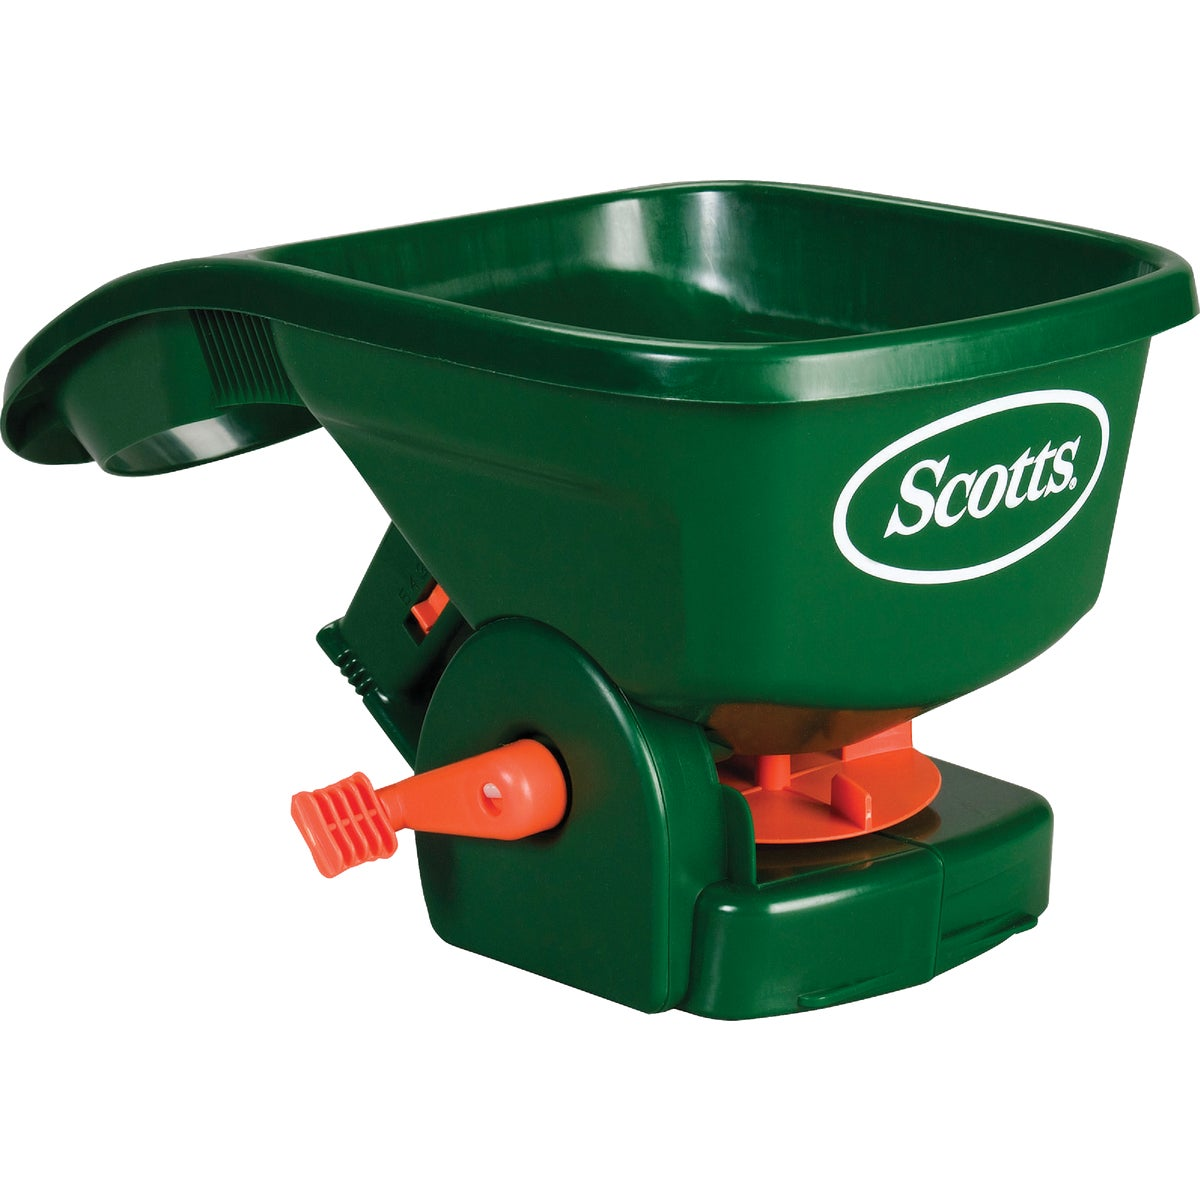 HAND HELD SPREADER - 71133 by Scotts Company